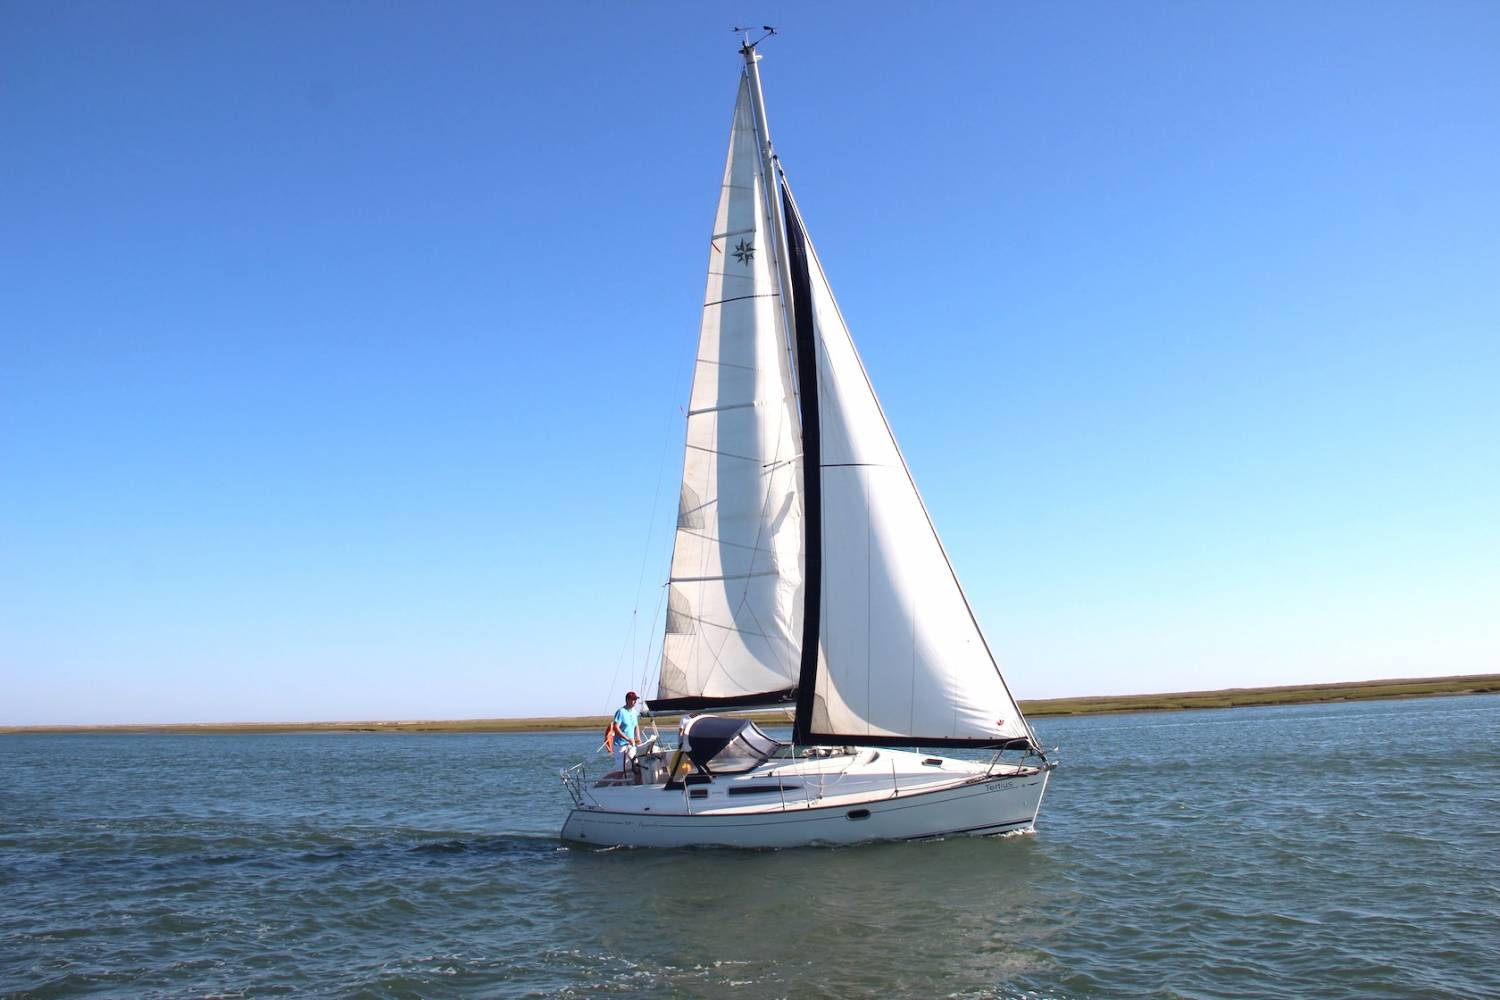 Sunset Sailing Boat Trip In Ria Formosa